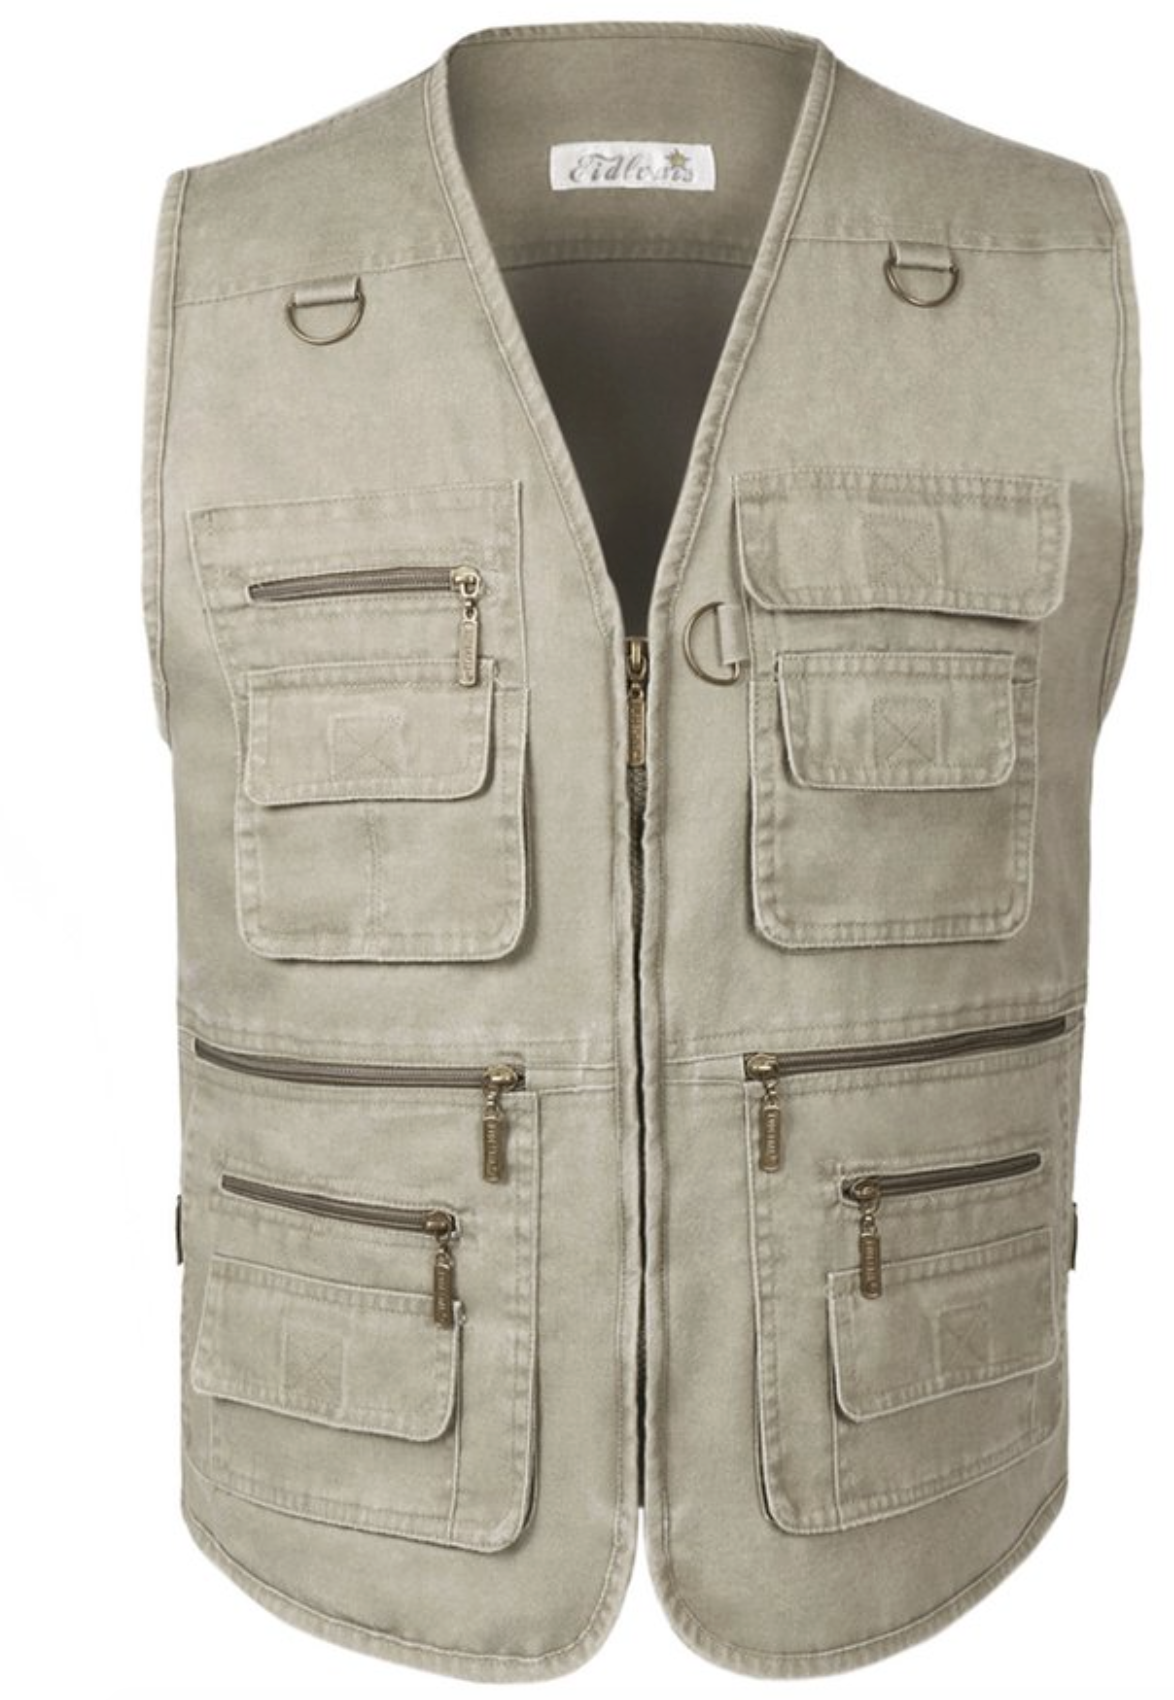 550a00ba56 Denim - Zipper closure - Vest Style: Loose Fit. - Suitable for hiking,  climbing, fishing, photography and other leisure outdoor sports - 12 outer  pockets ...